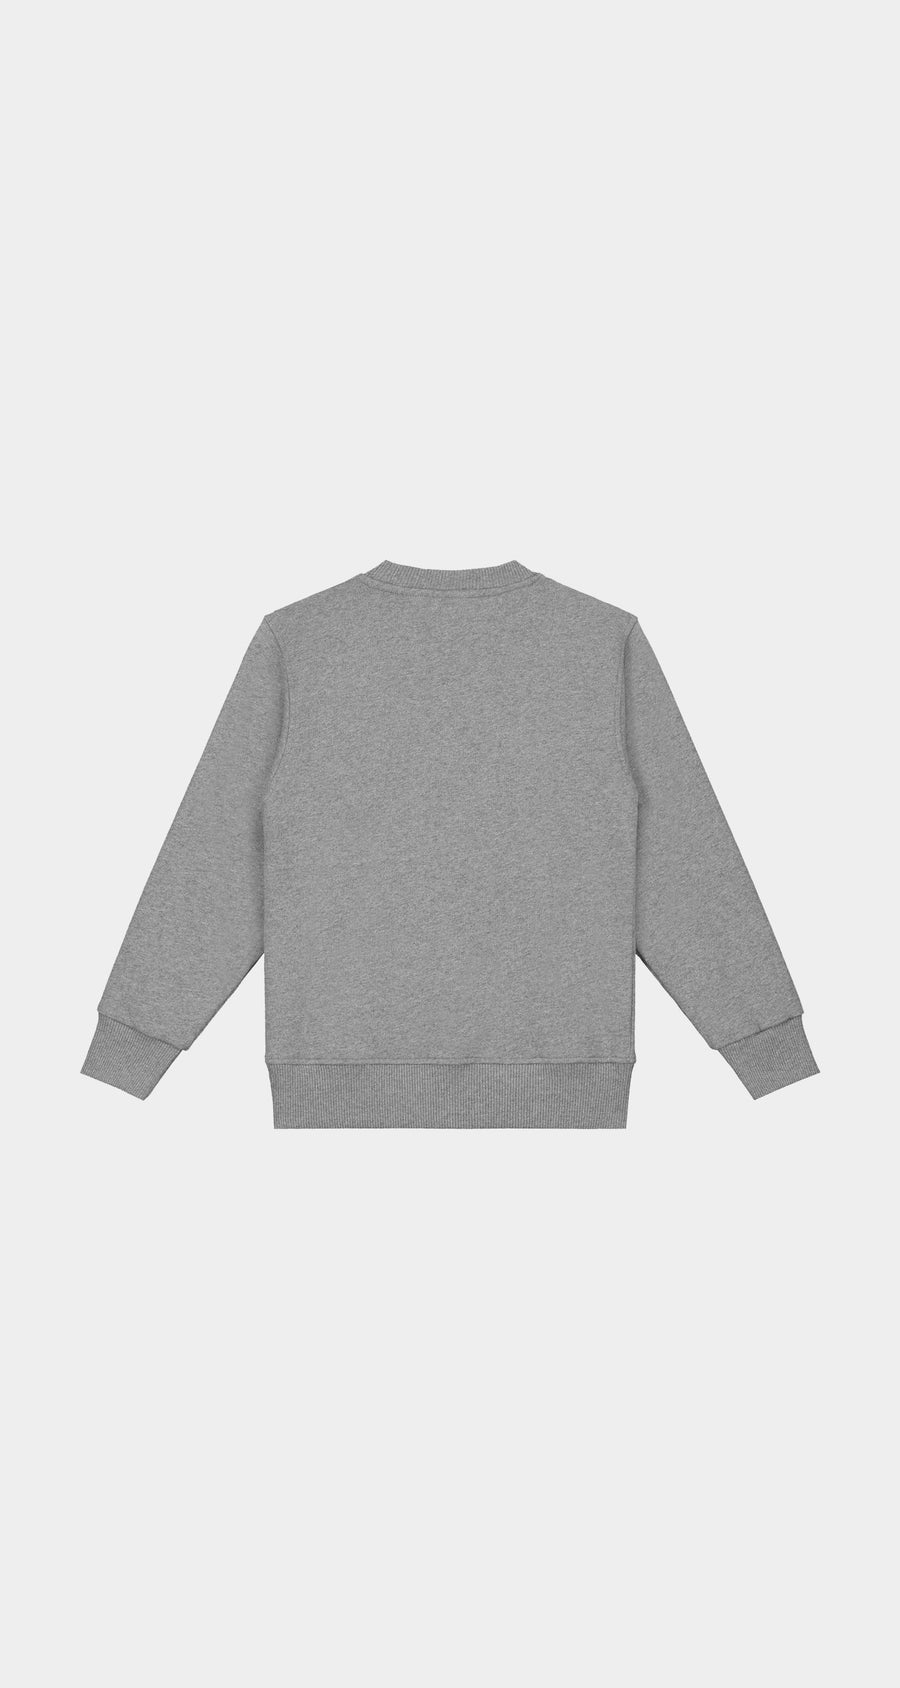 Daily Paper - Grey Kids Alias Sweater NEW - Rear